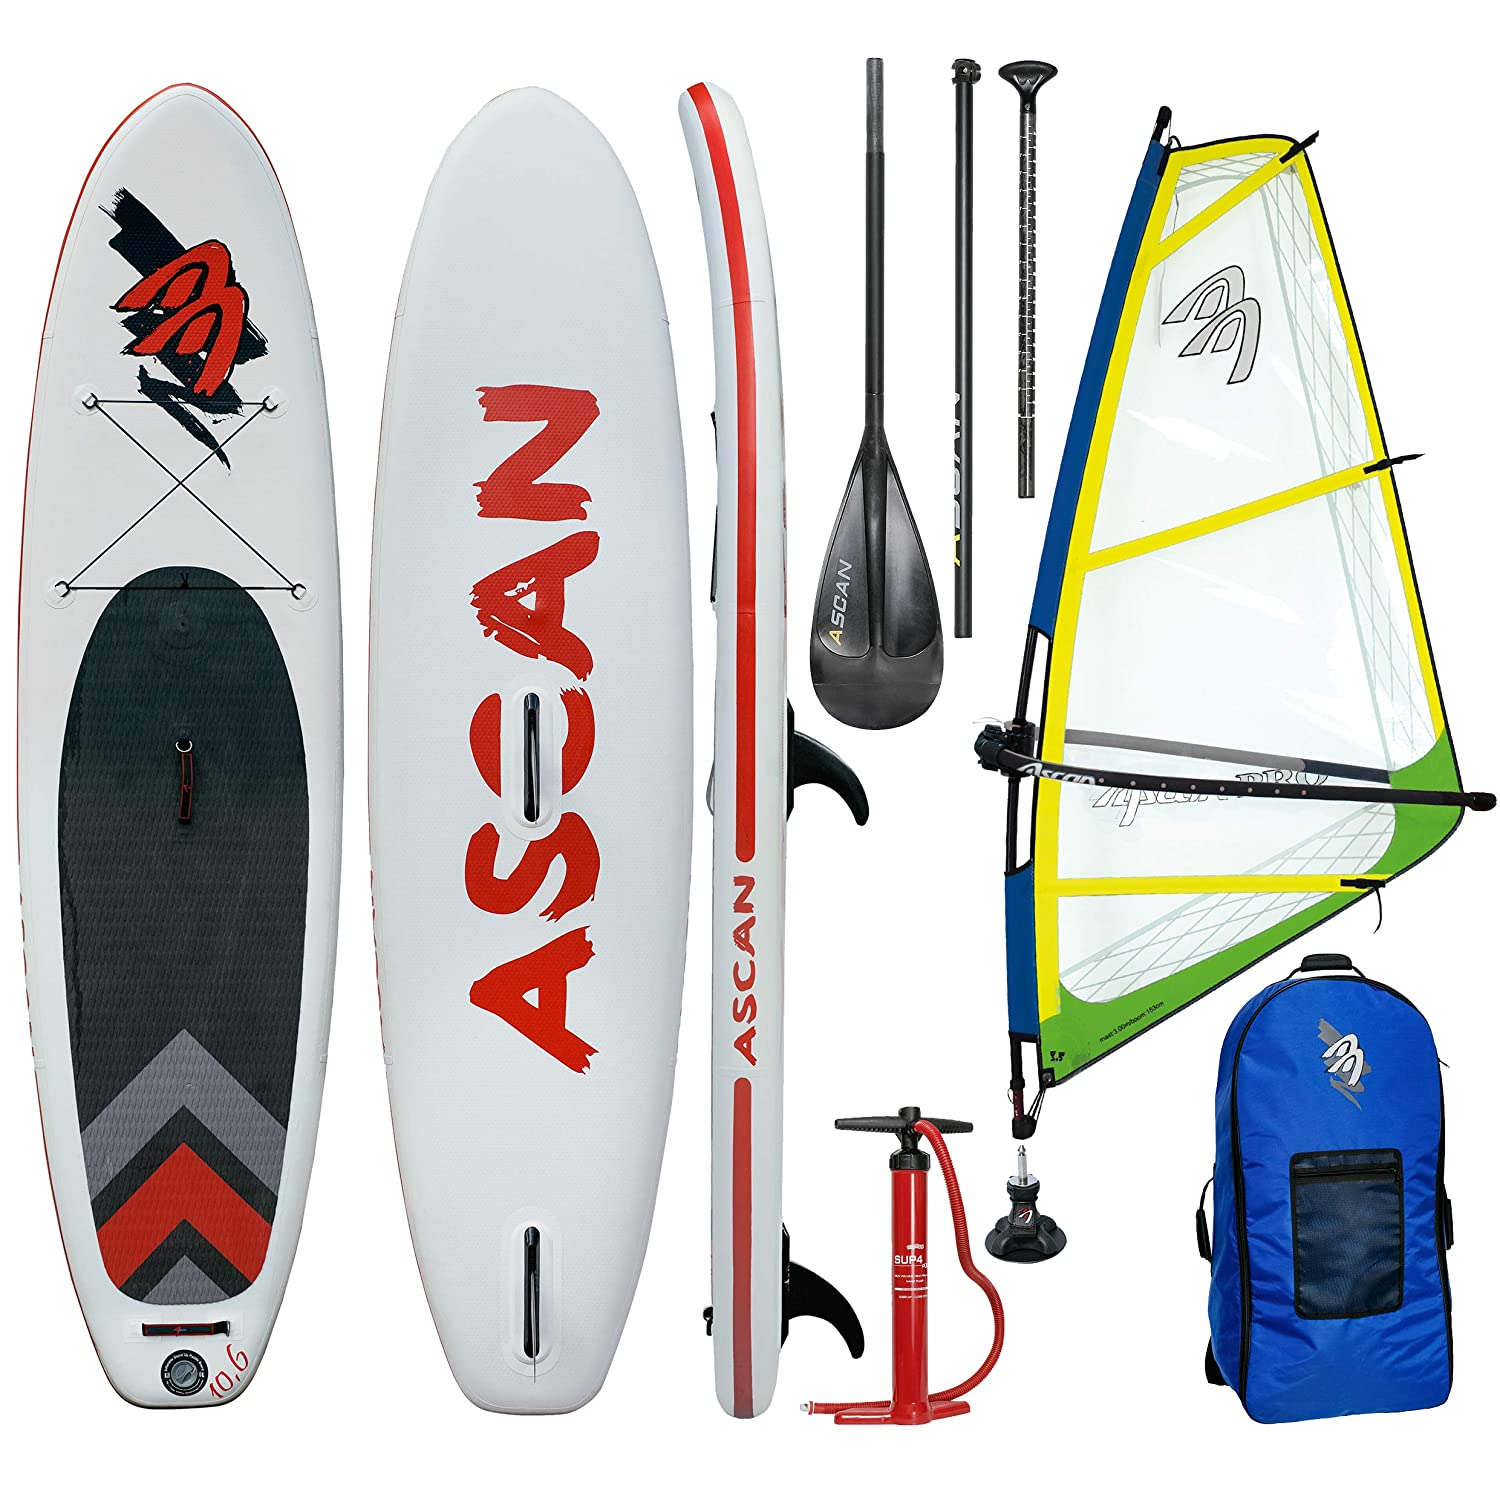 Ascan Wind iSUP Board 10.6 - Tabla de Windsurf Hinchable con Aleta ...